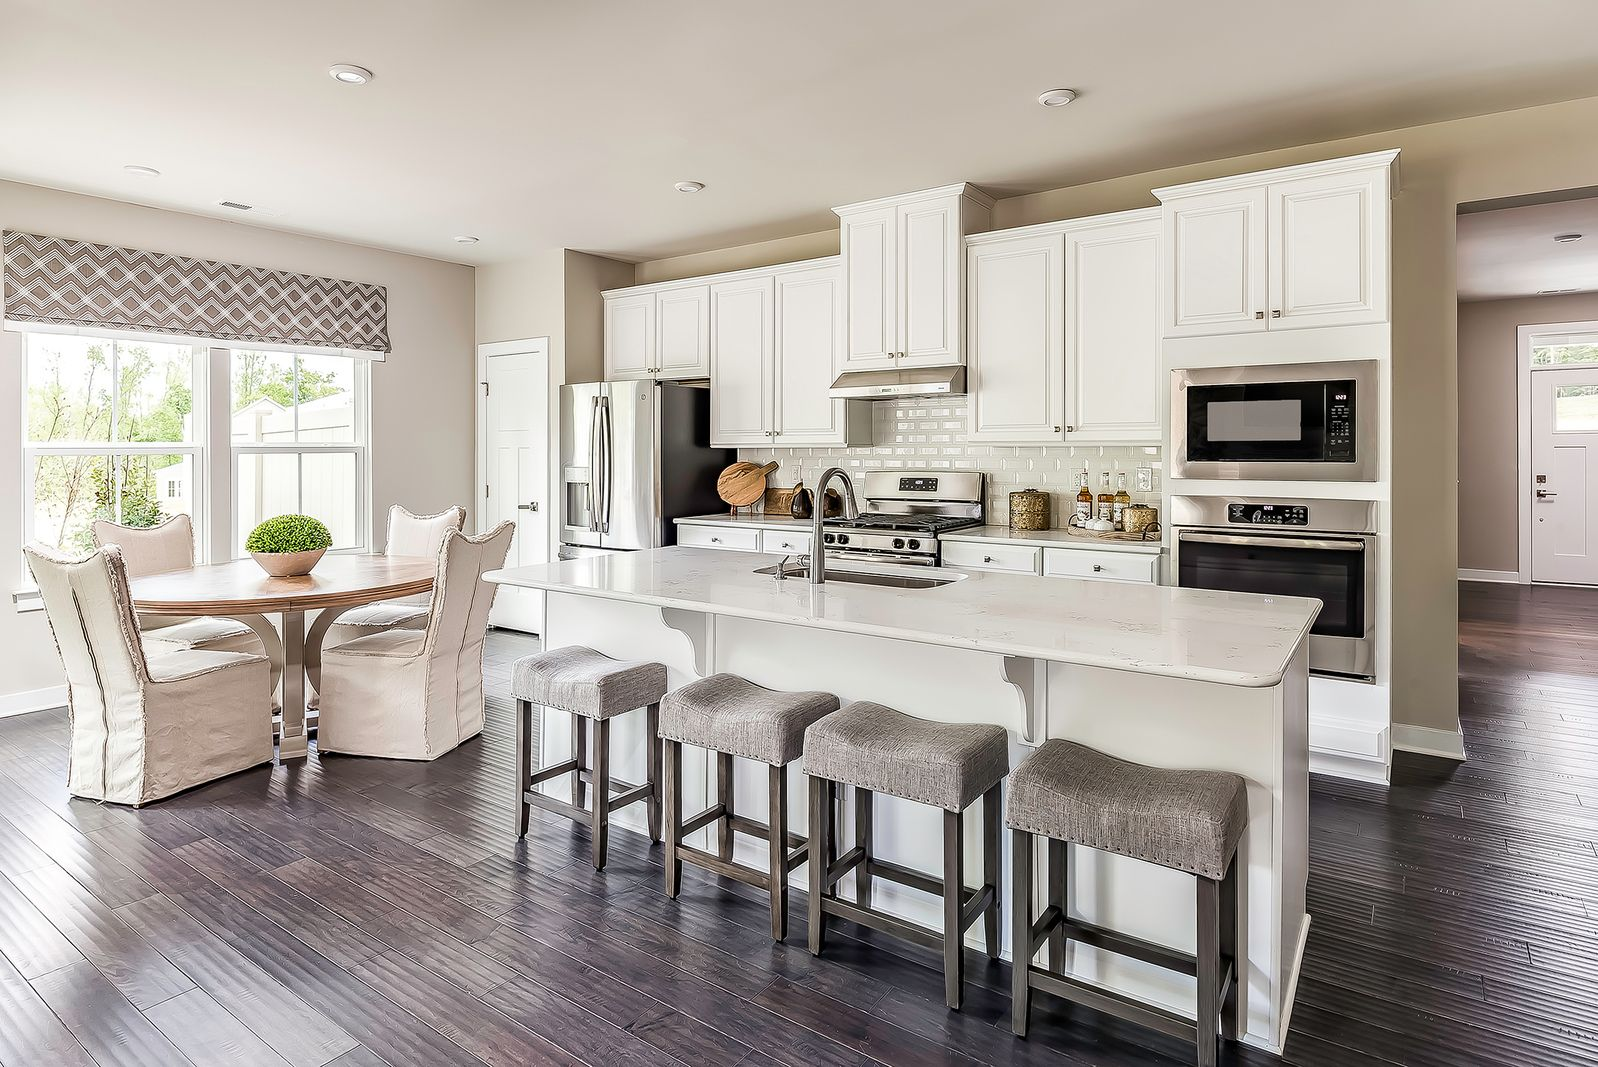 Kitchen featured in the Bramante Ranch By Ryan Homes in Washington, VA